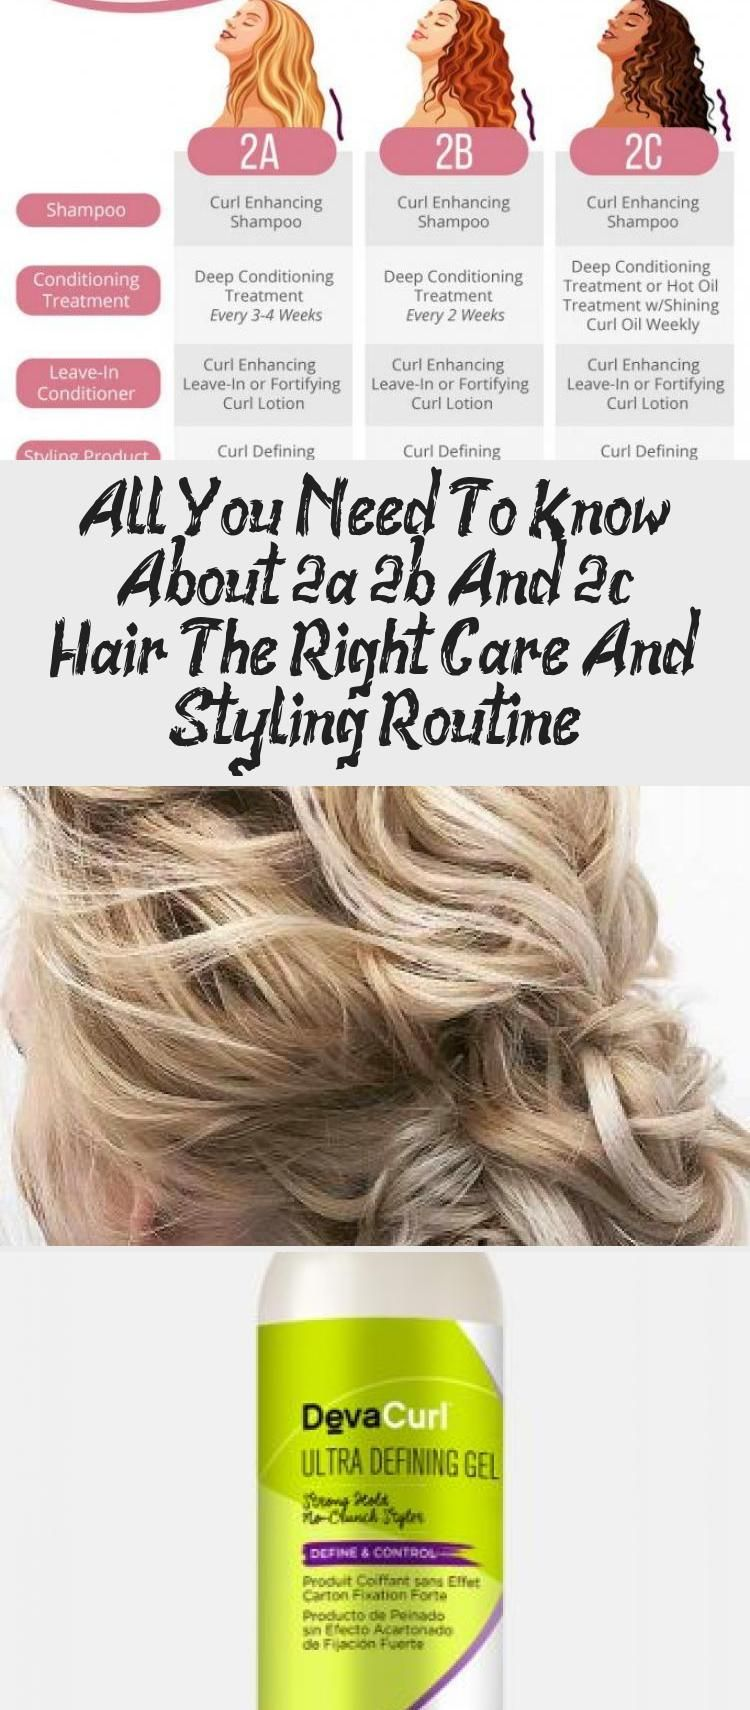 All You Need To Know About 2a, 2b, And 2c Hair The Right